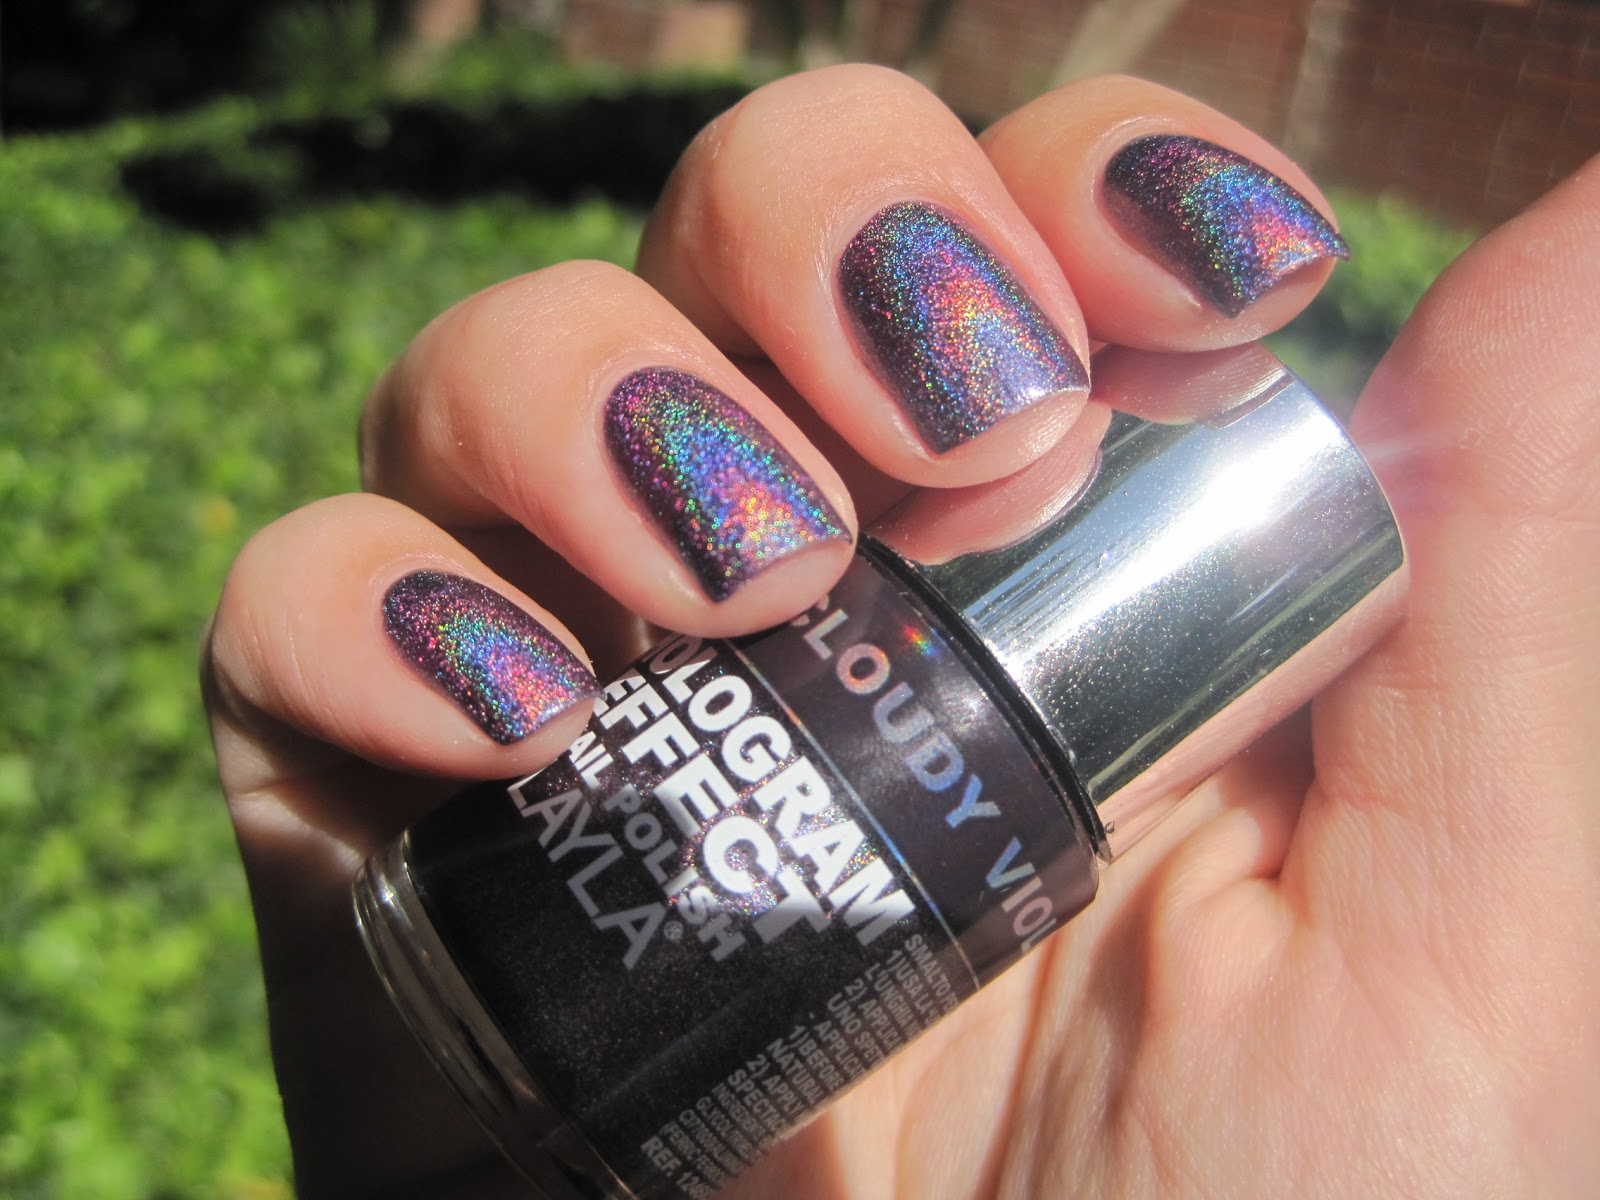 Sparkly Vernis: OPI Nail Envy and Peelies